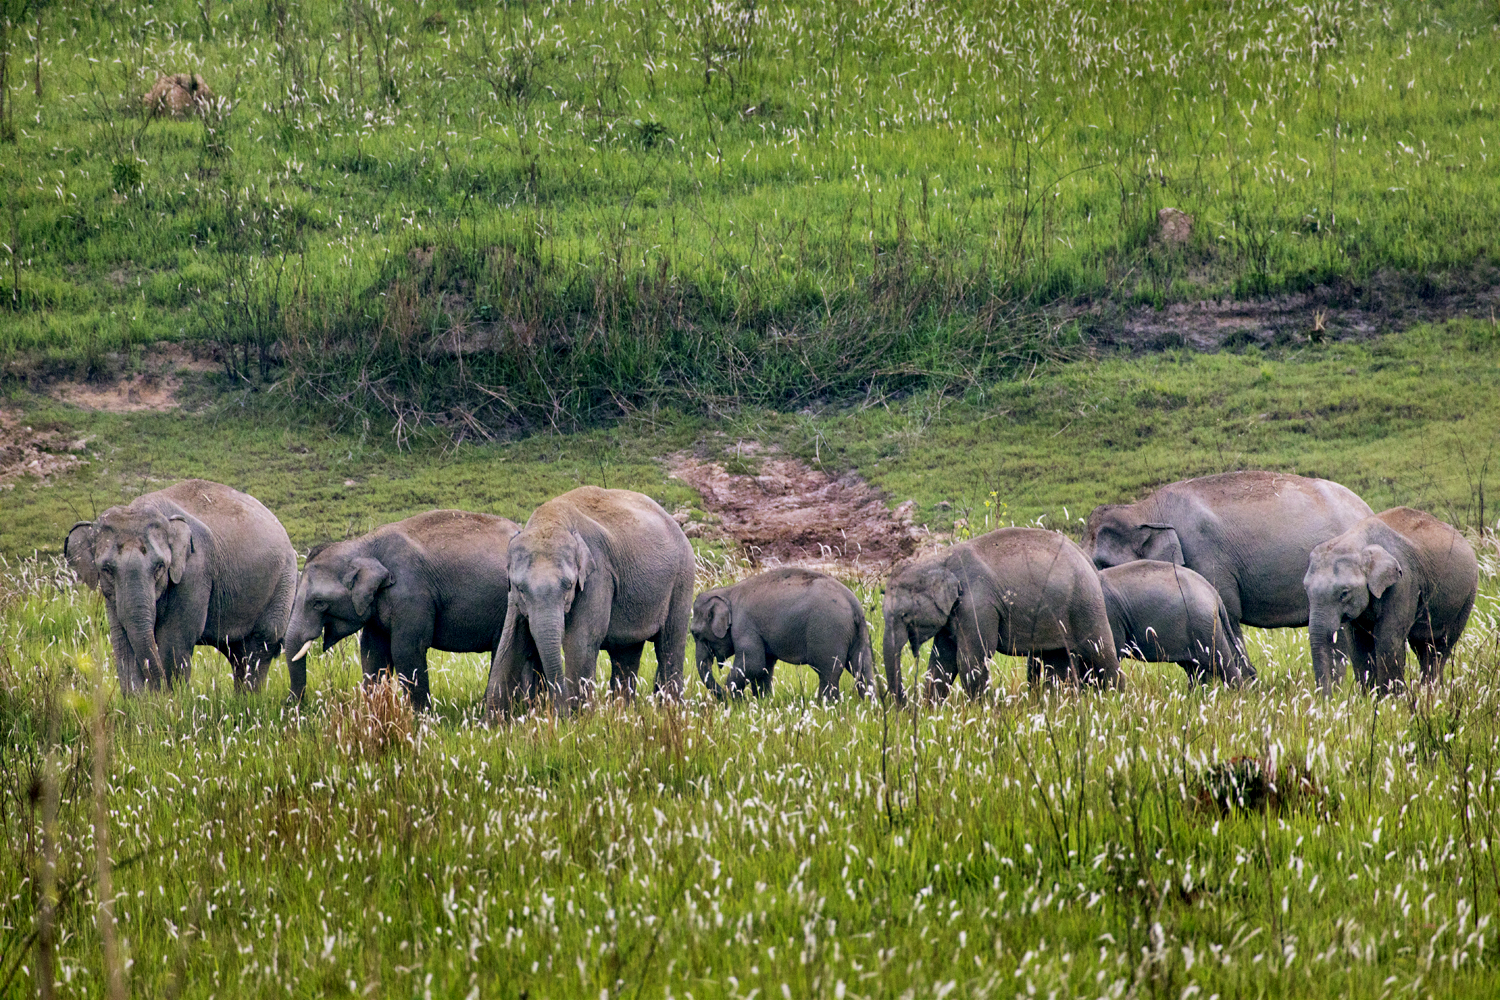 Elephants in the grassland